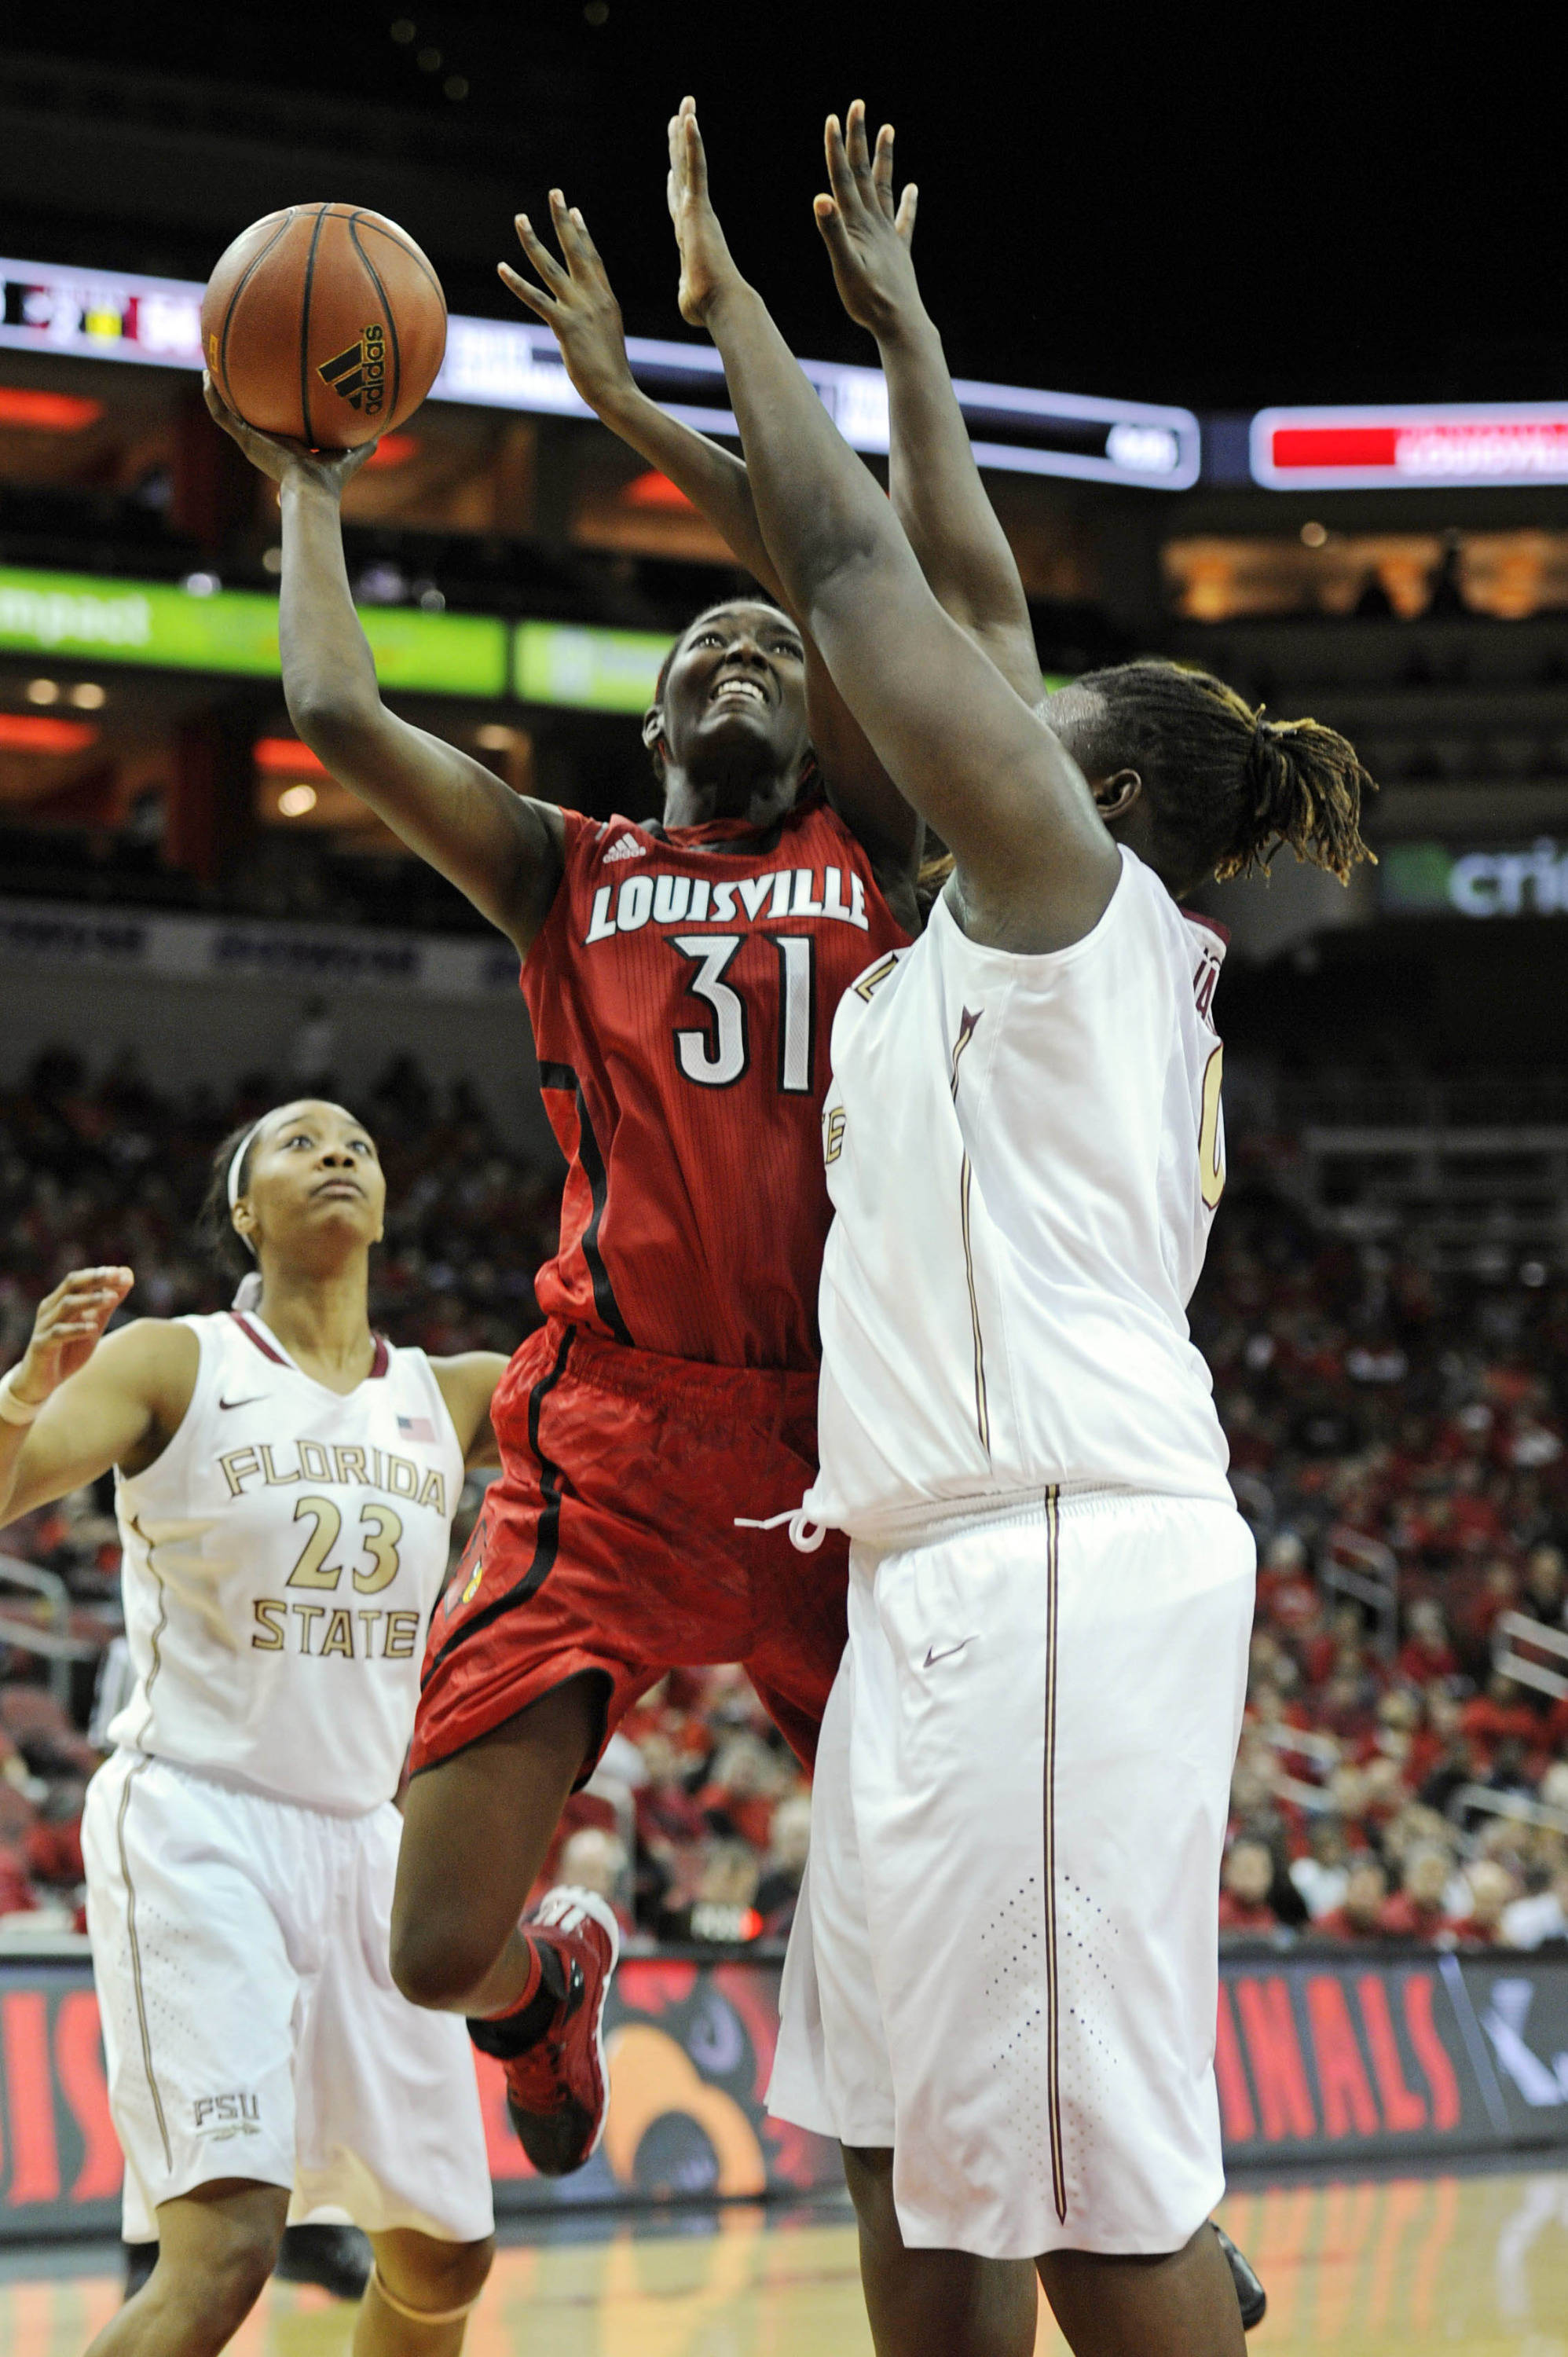 Nov 24, 2013; Louisville, KY, USA; Louisville Cardinals forward Asia Taylor (31) shoots against Florida State Seminoles center Kai James (0) during overtime at KFC YUM! Center. Louisville defeated Florida State 69-59.  Mandatory Credit: Jamie Rhodes-USA TODAY Sports